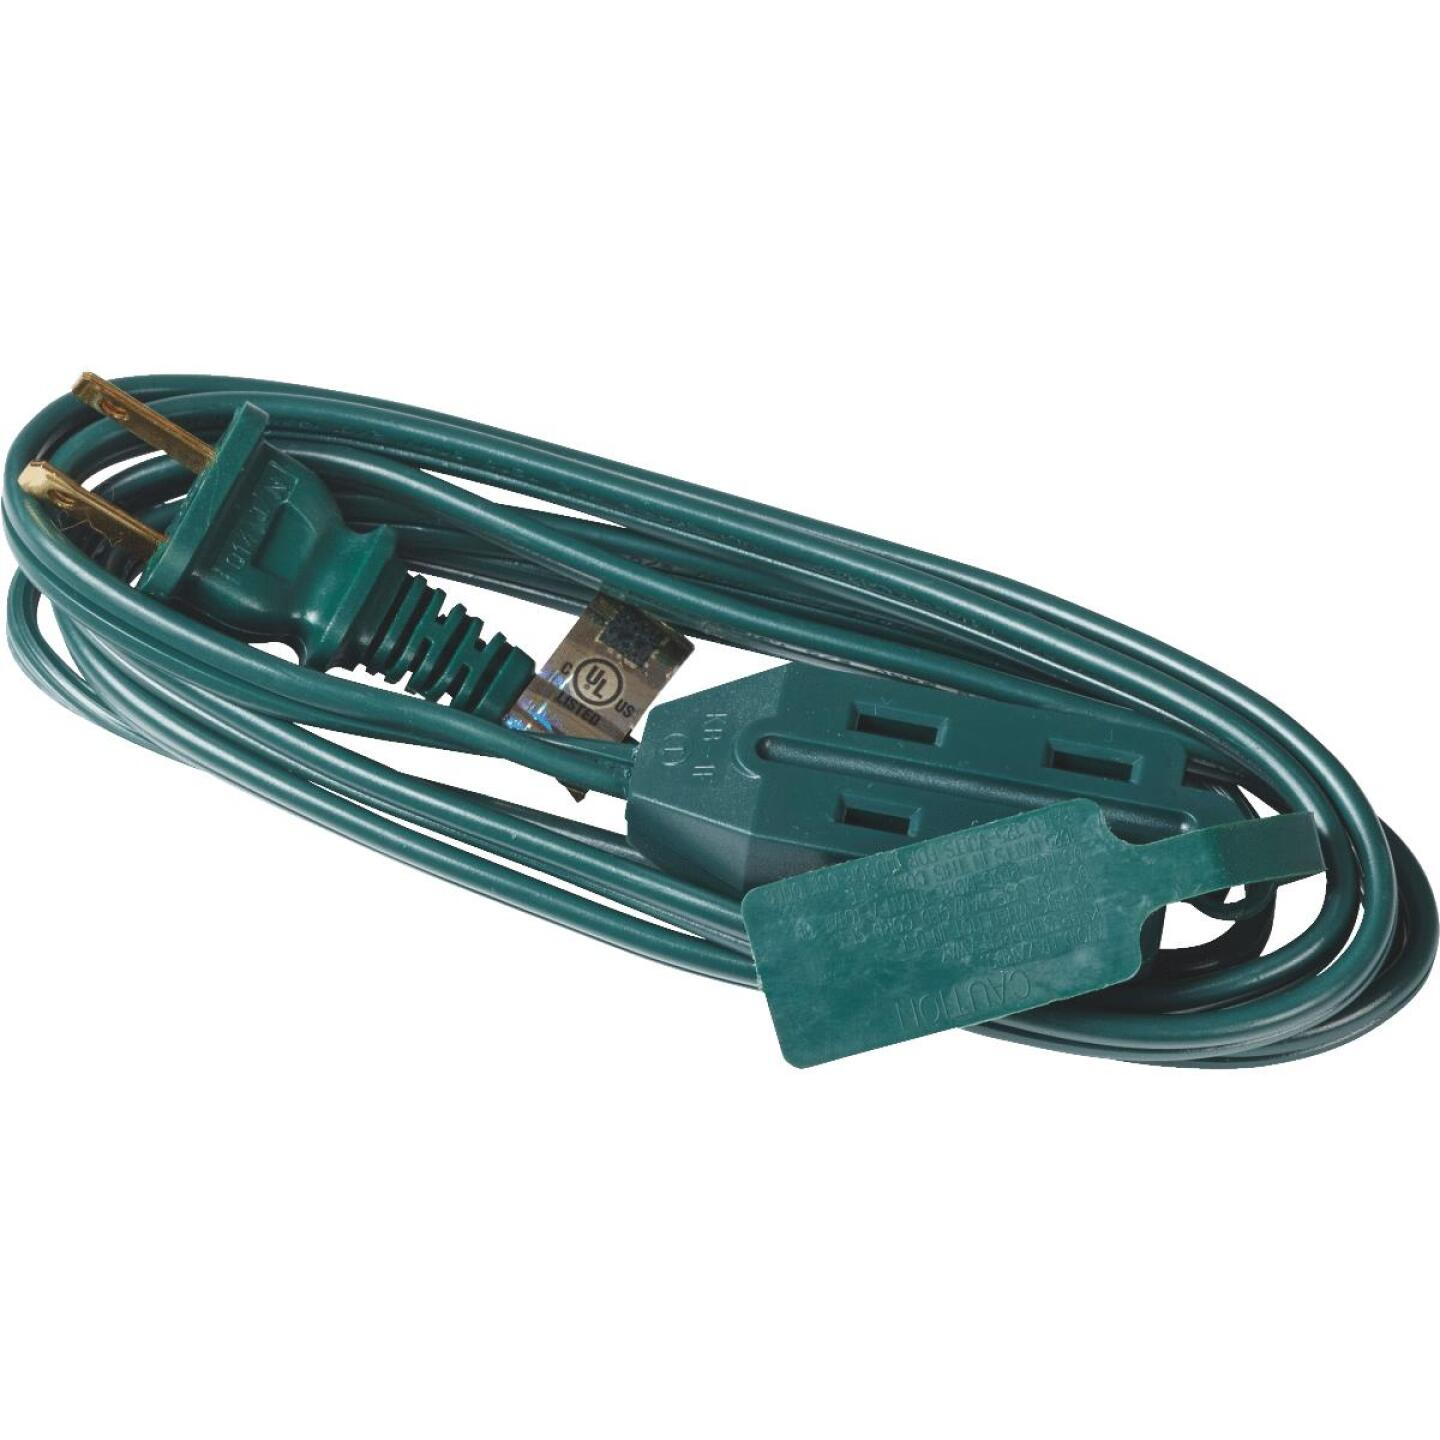 Do it 6 Ft. 16/2 Green Cube Tap Extension Cord Image 2